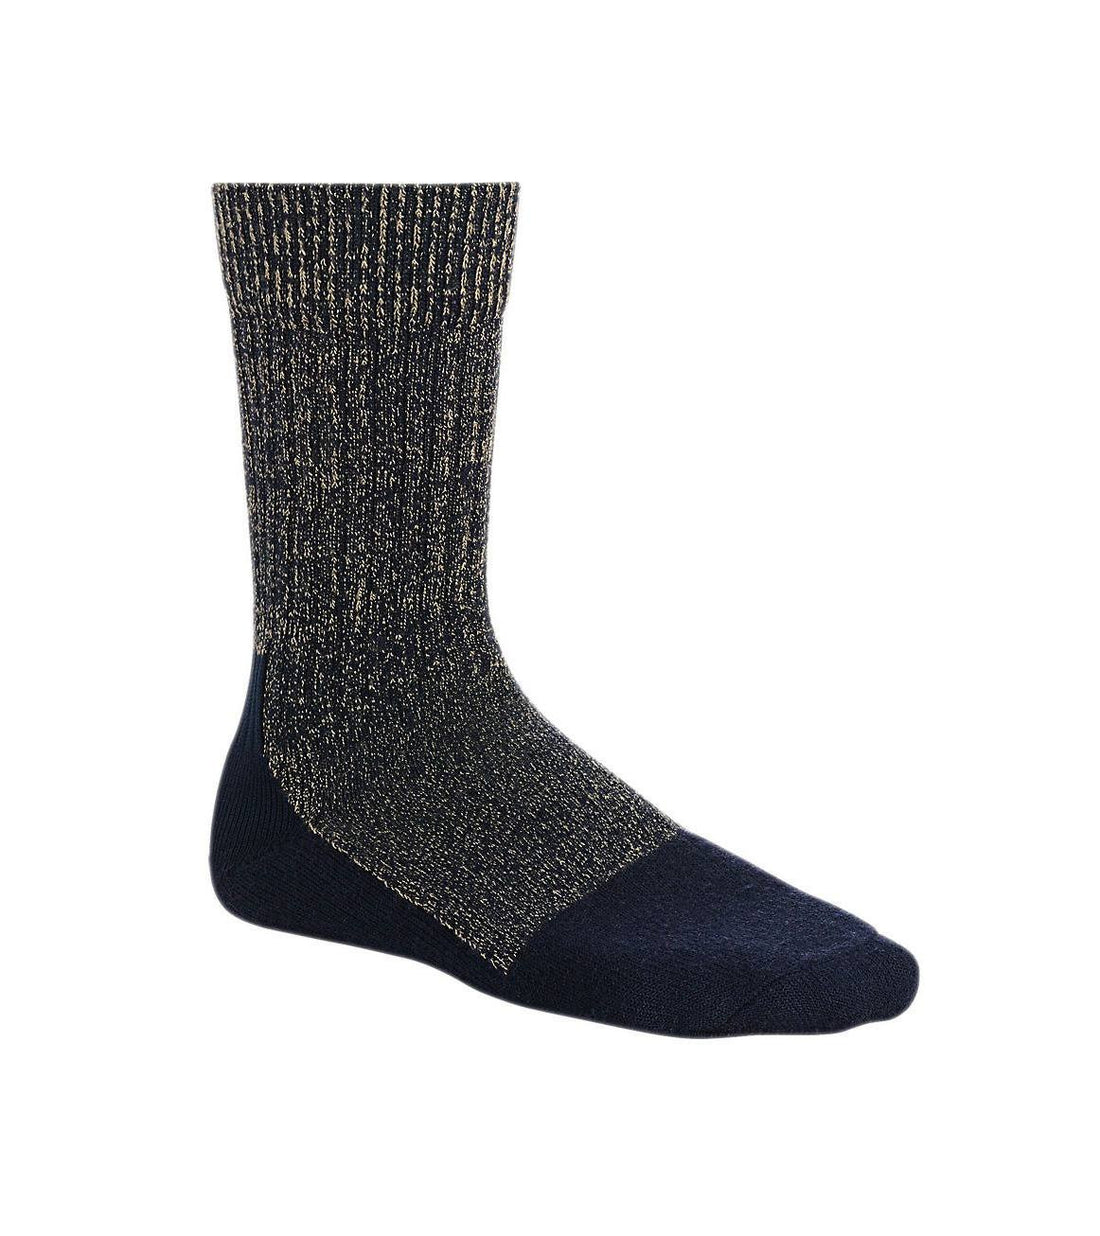 Red Wing Deep Toe Capped Wool Sock - Socks/Underwear - Iron and Resin